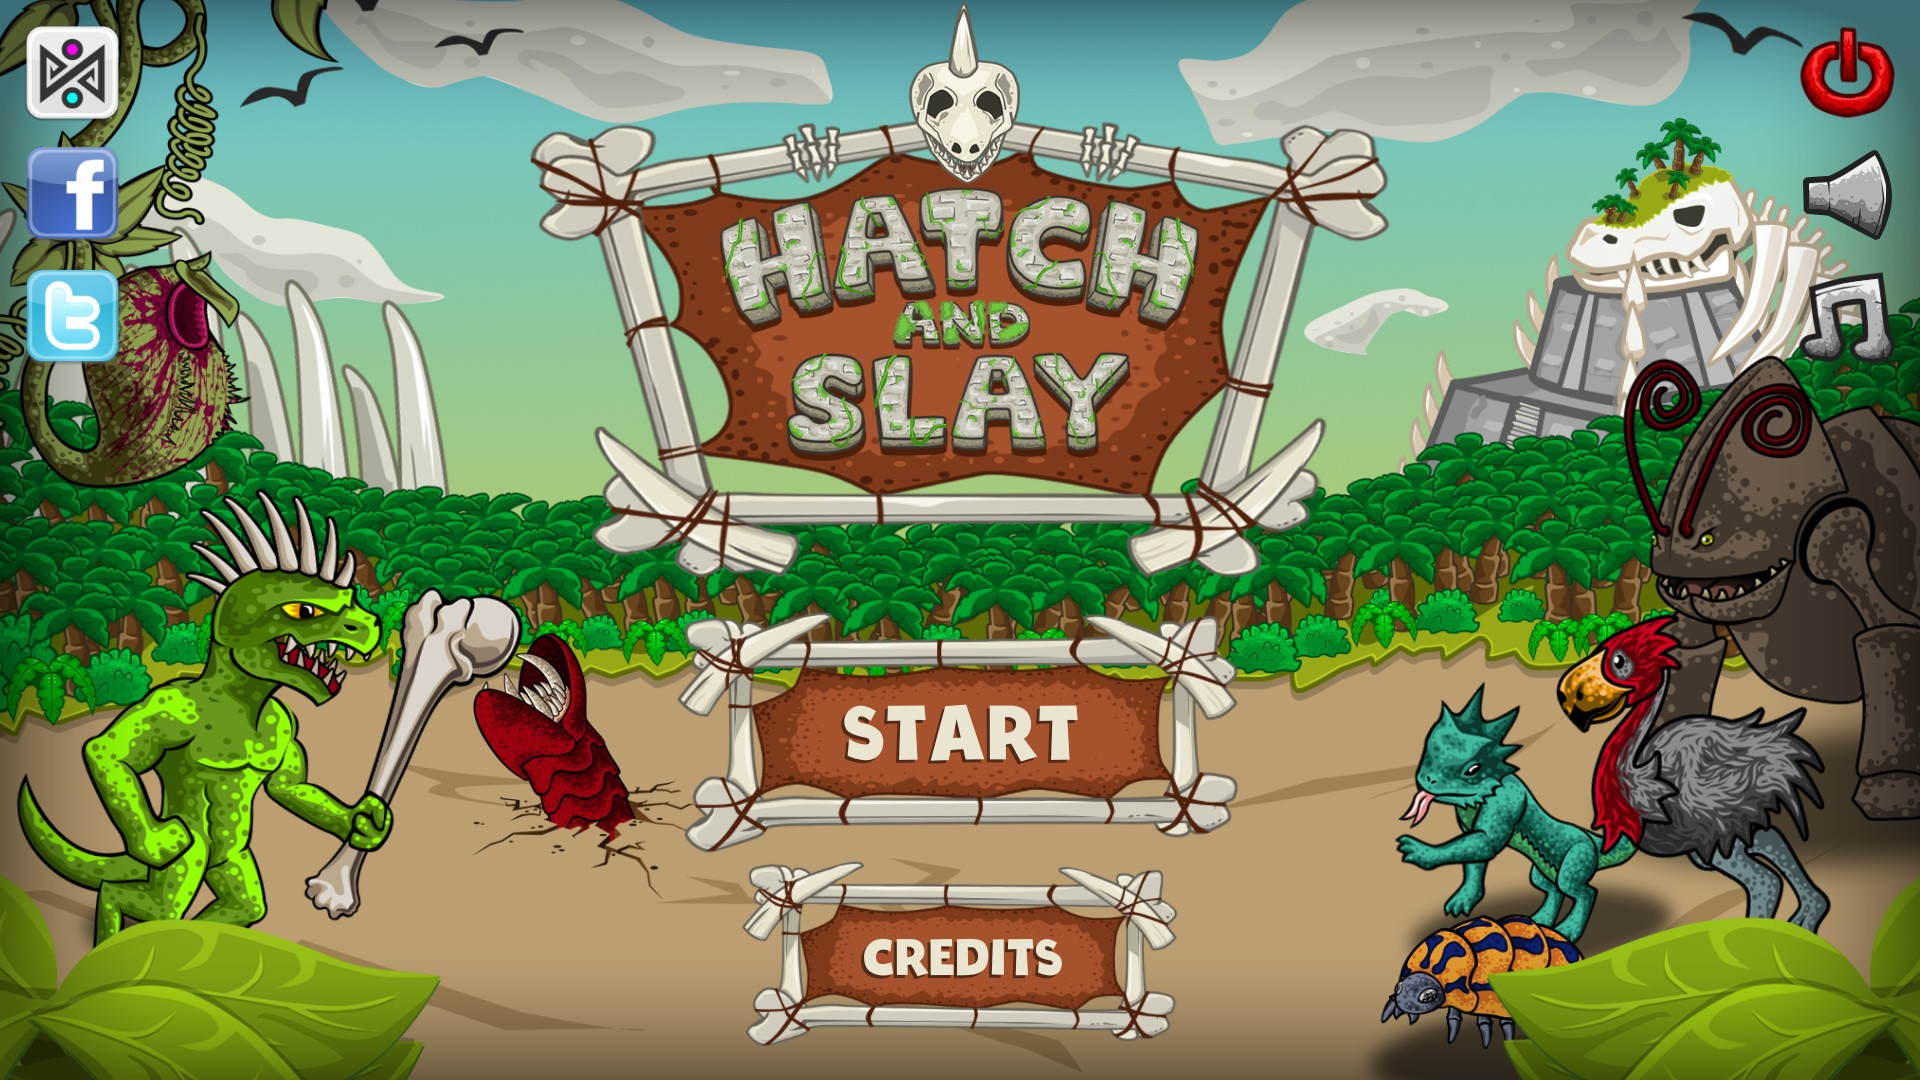 Hatch and Slay (Steam Key, Region Free)